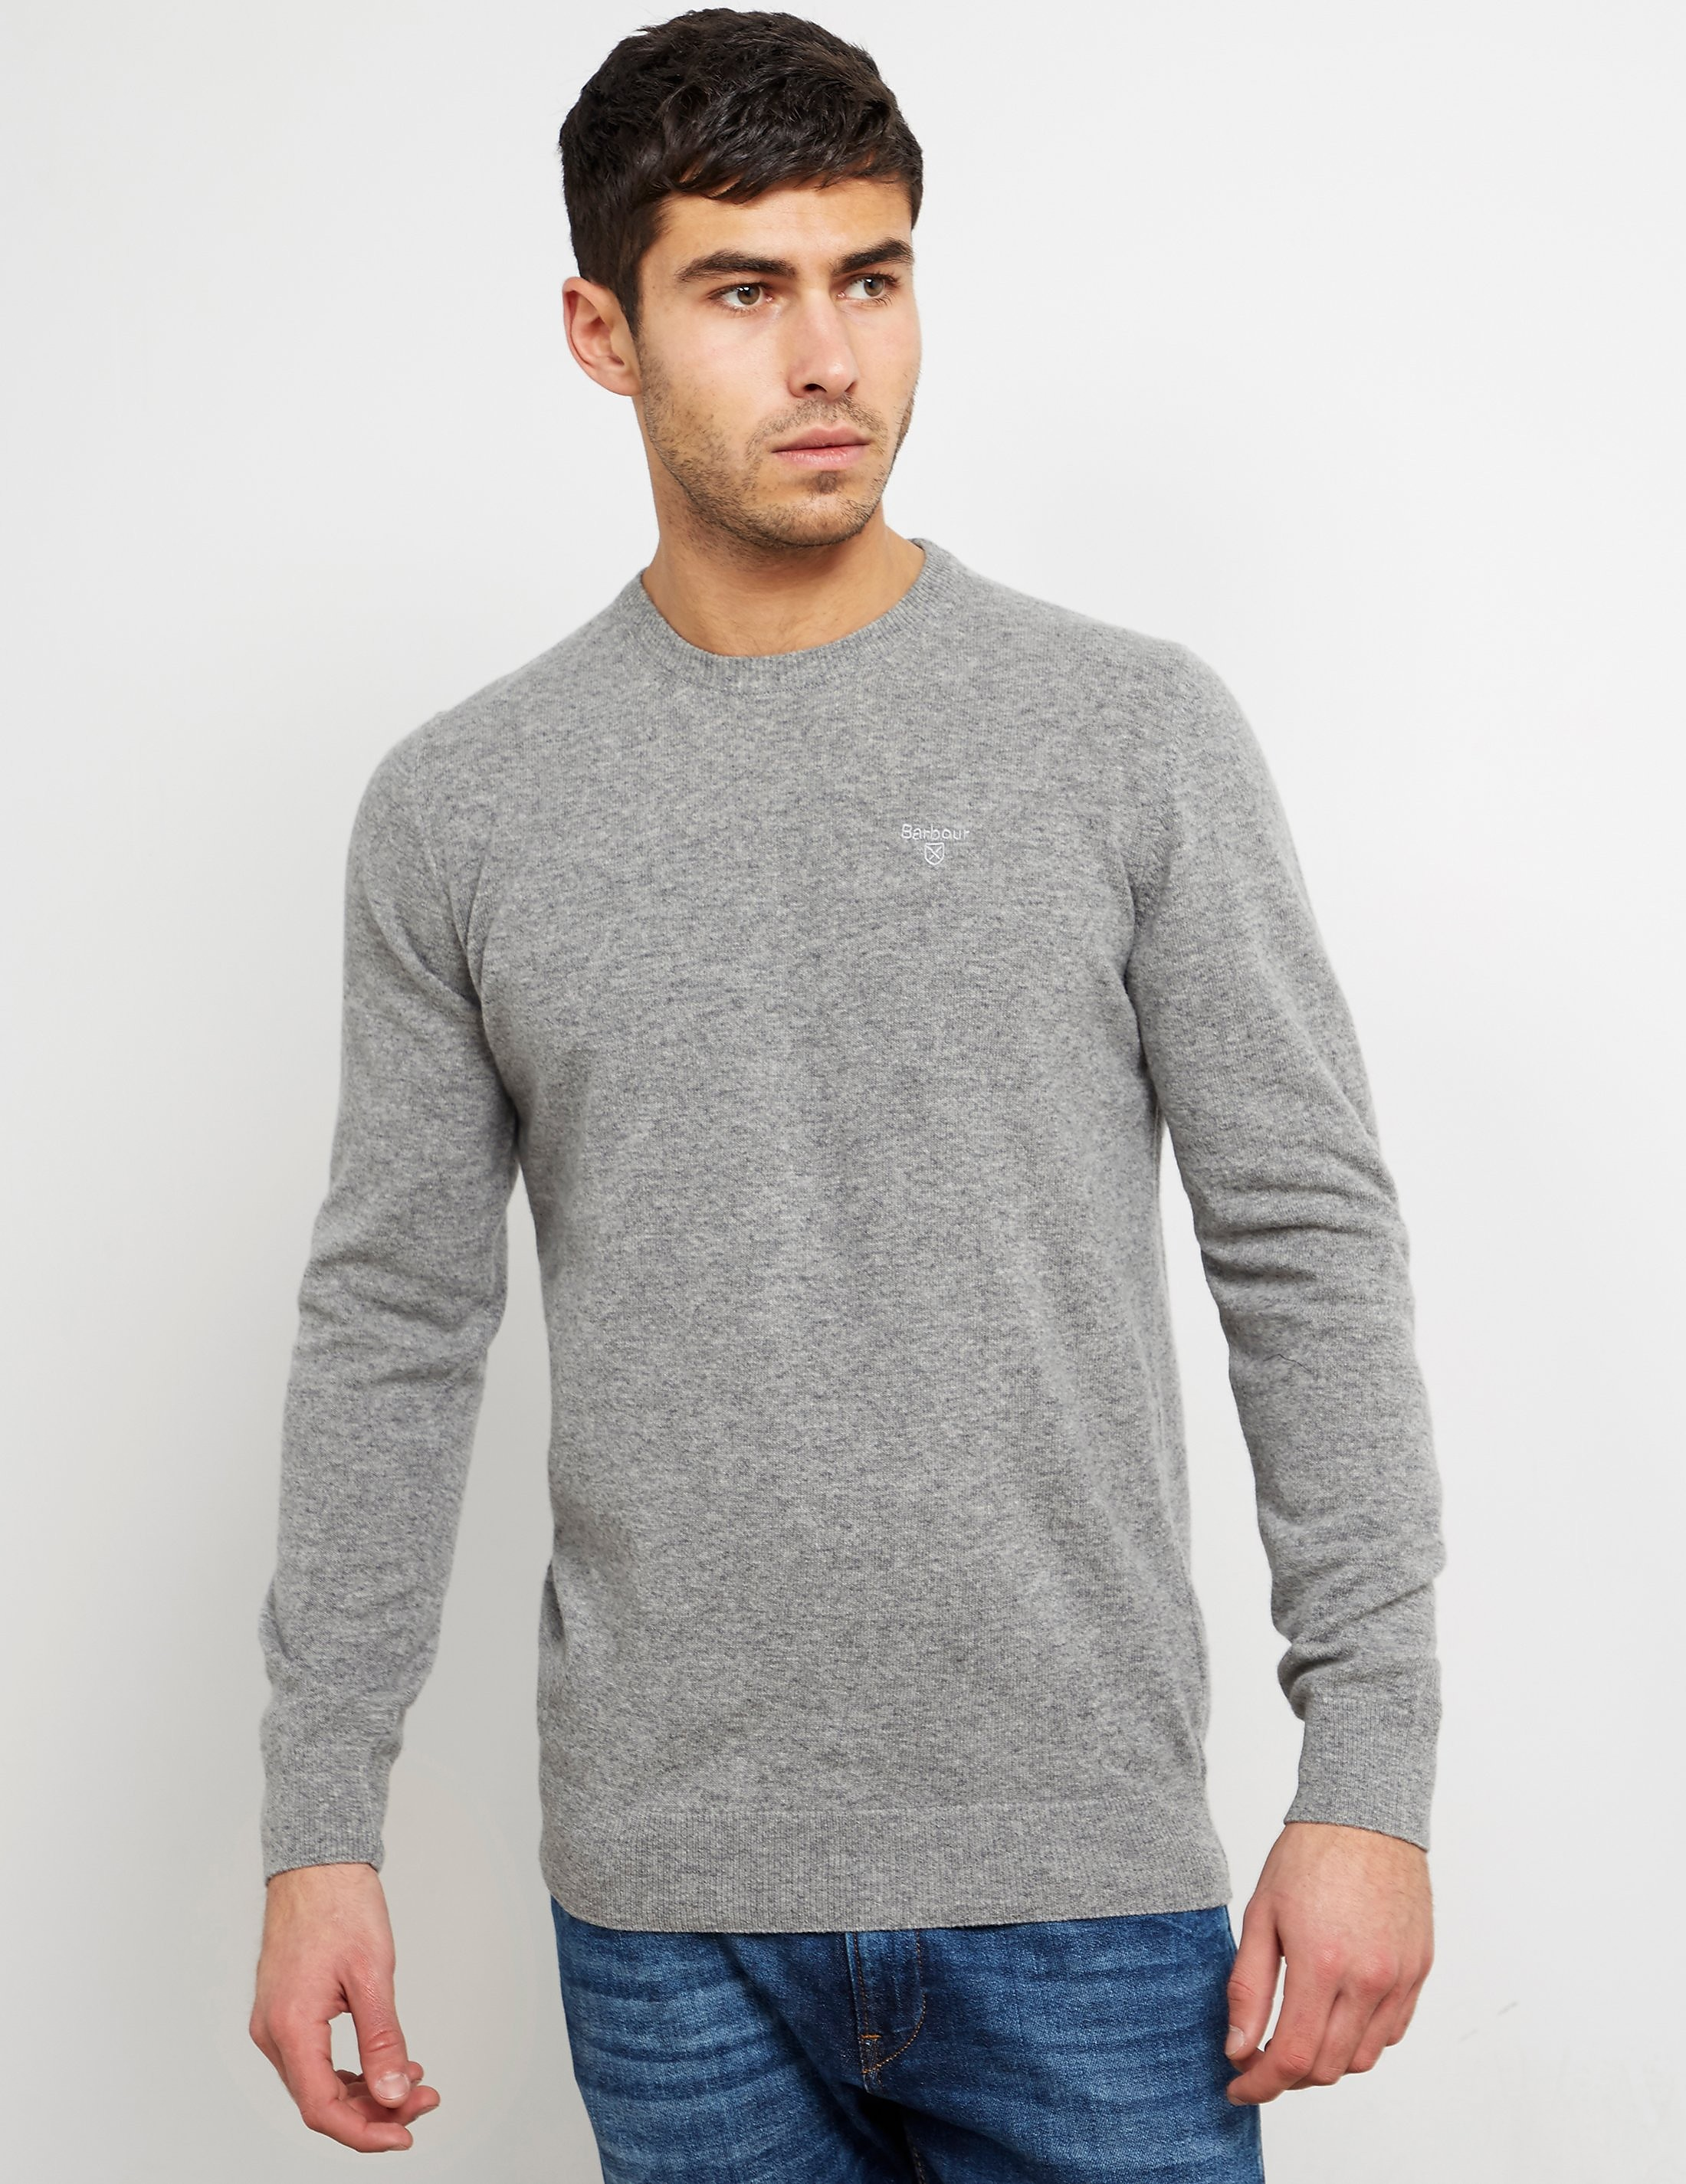 Barbour Wool Crew Knitted Jumper